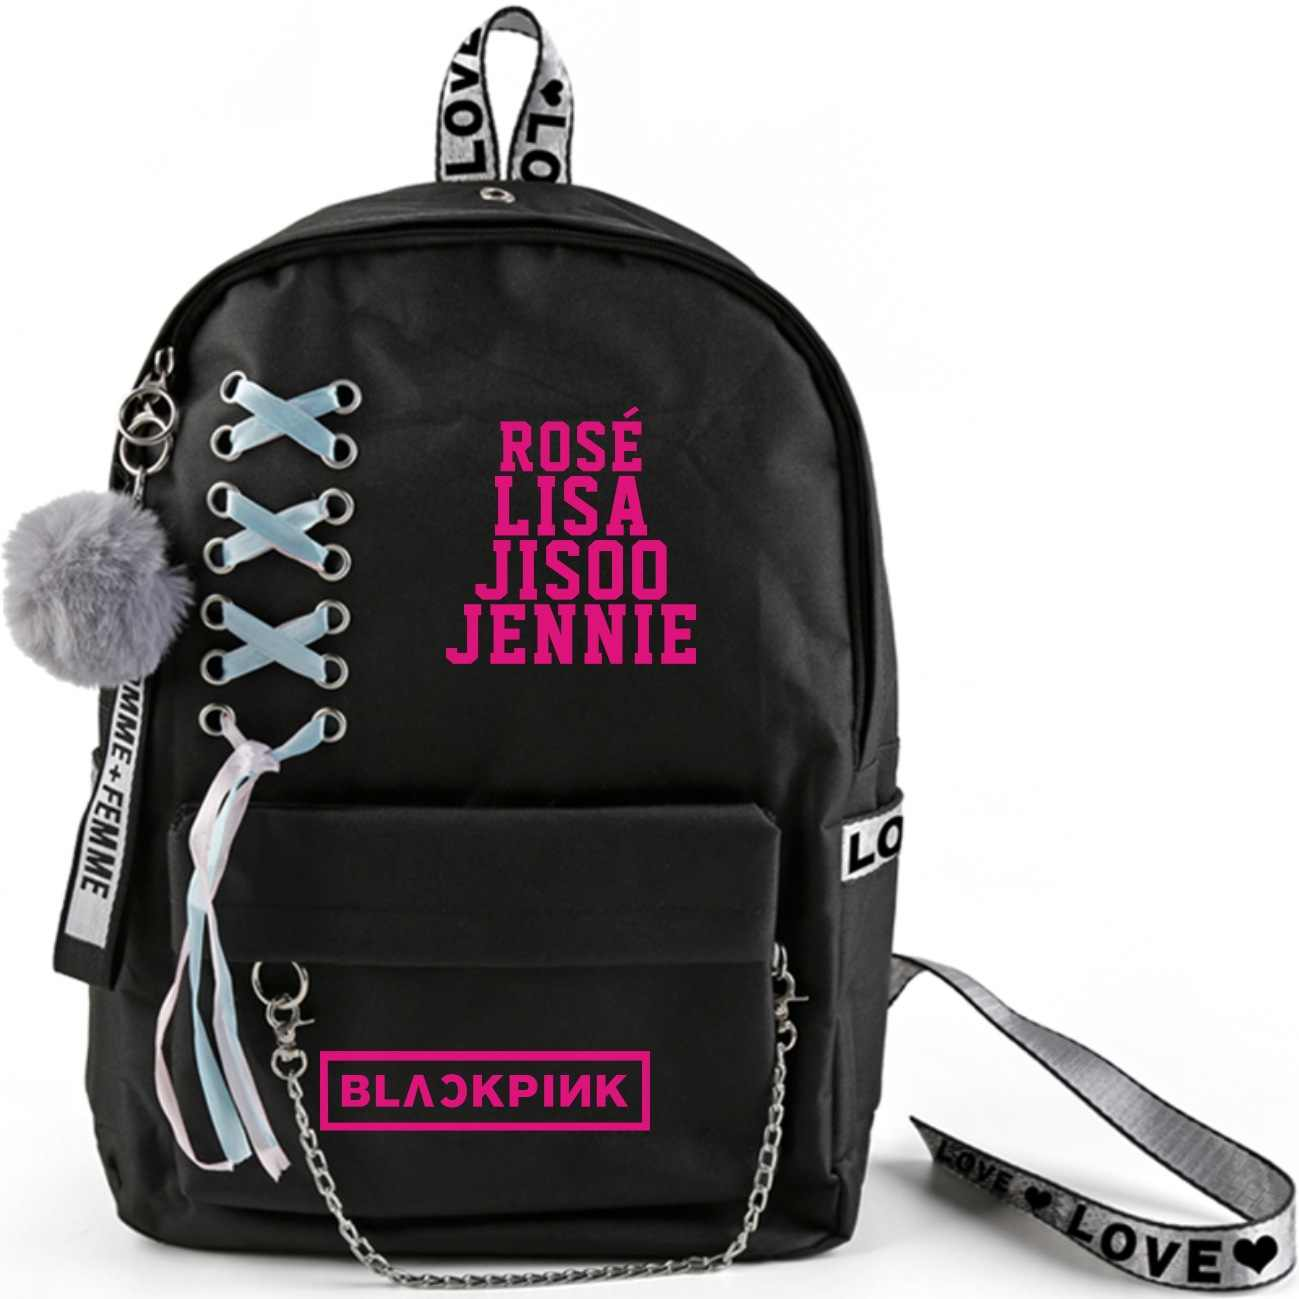 KPOP BLACKPINK LISA JENNIE ROSE JISOO backpack double shoulder schoolbag computer travel bag high capacity bag school students